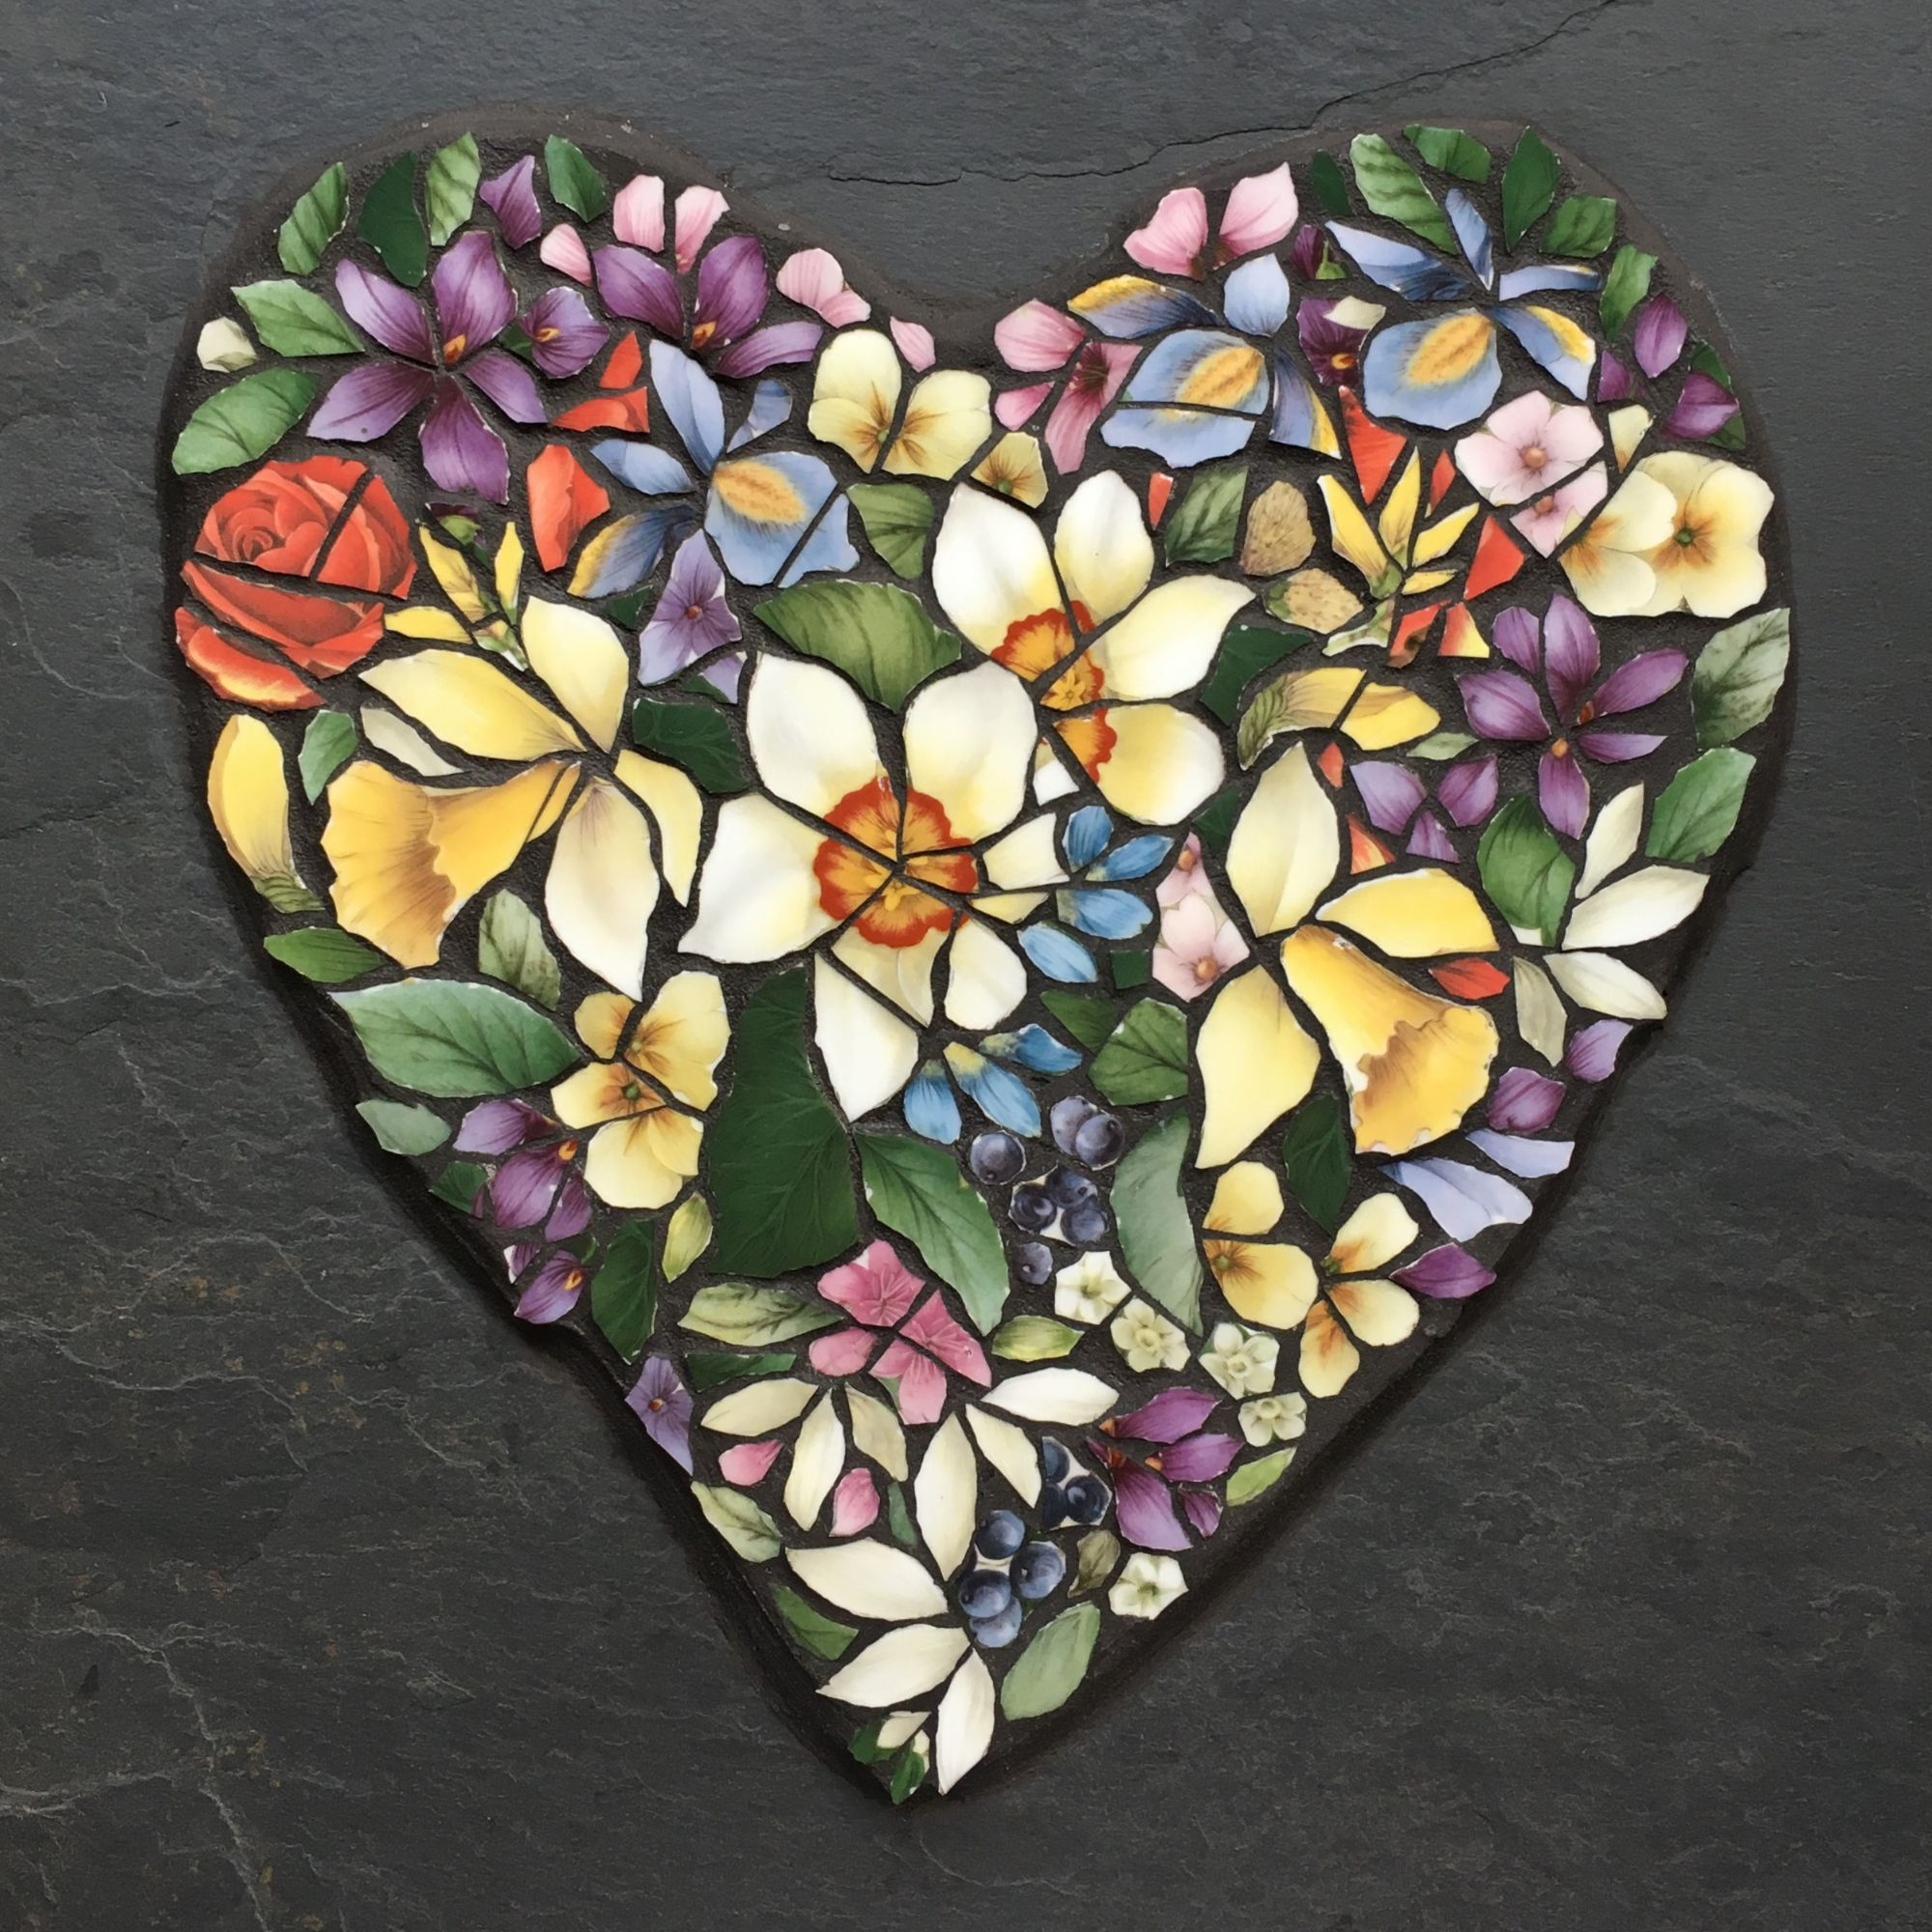 Mosaic Crockery Workshop